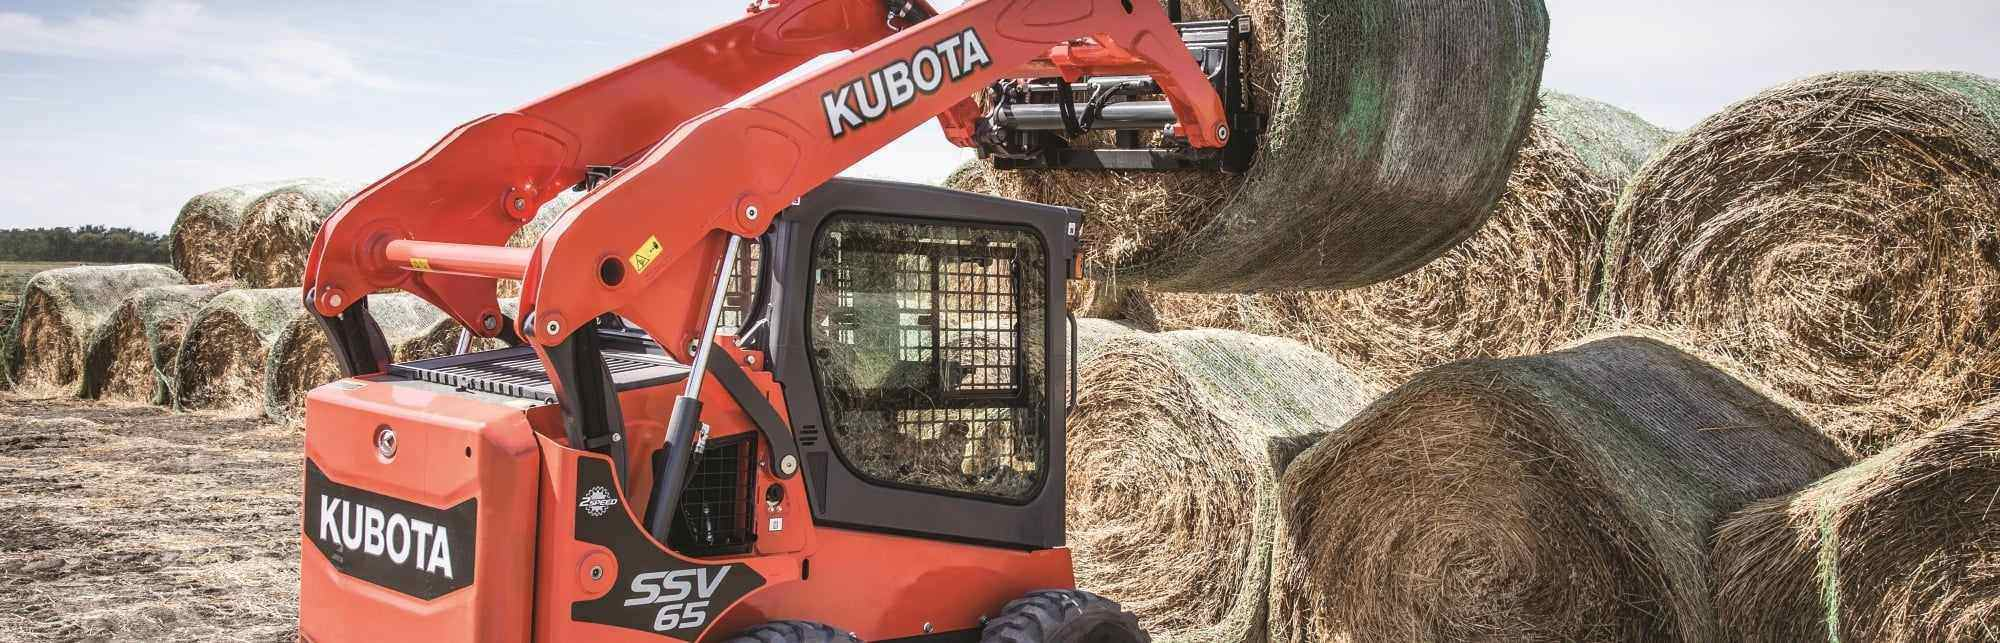 Great Plains Kubota - Rentals - Rent a tack loader today!